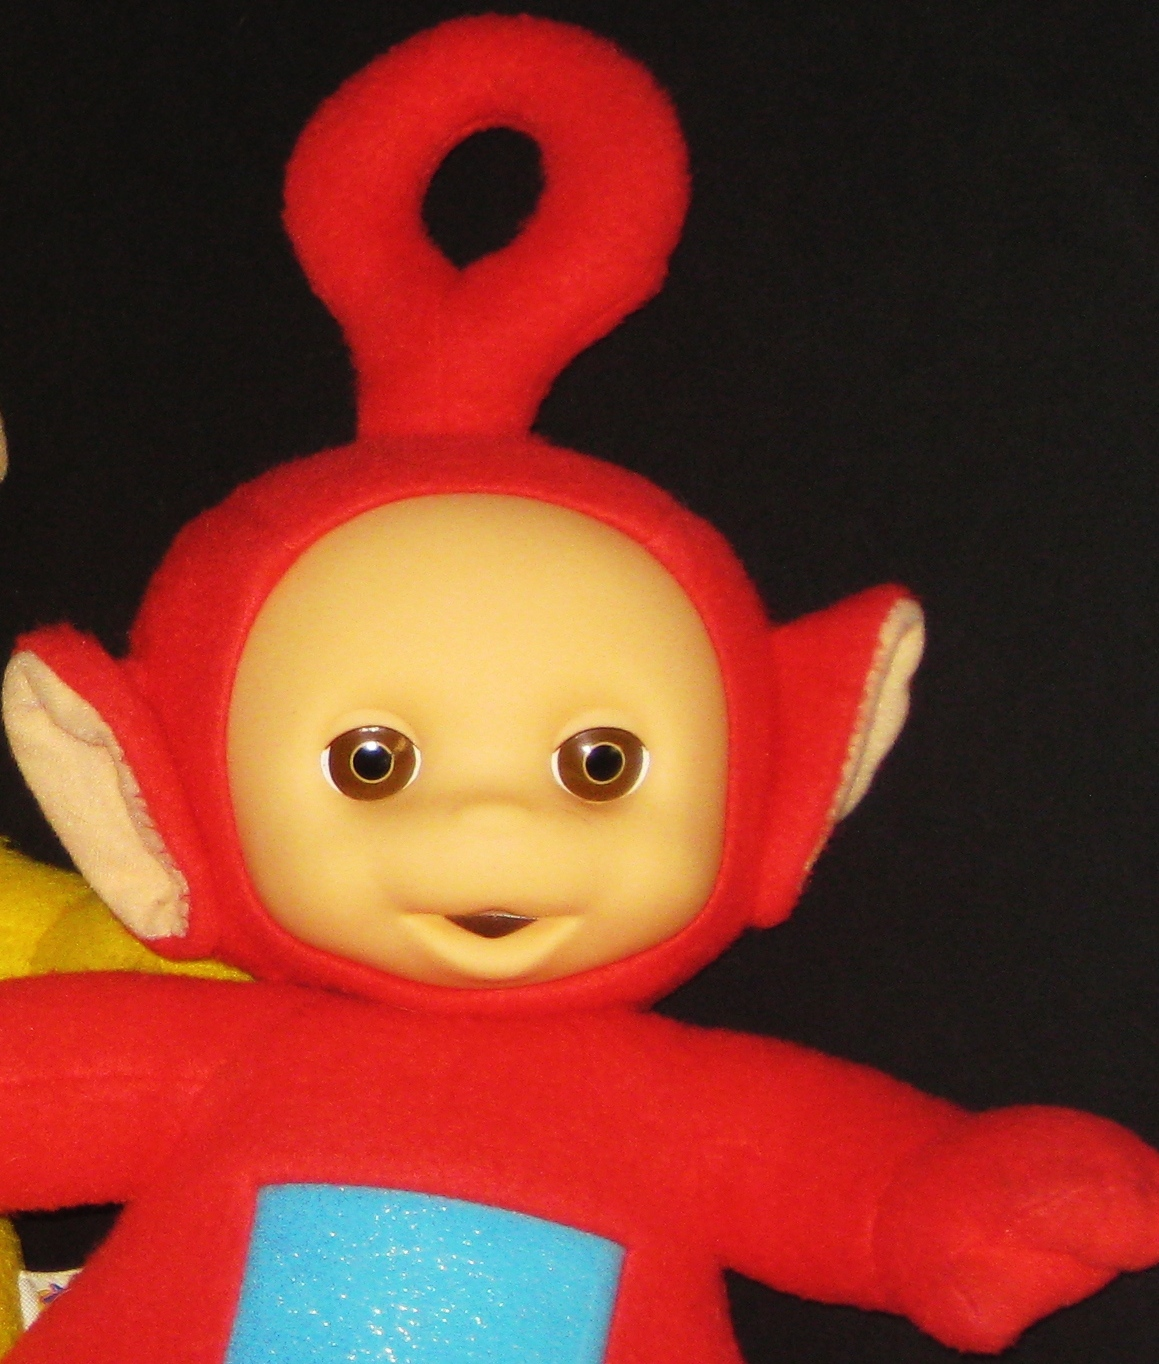 Pin Evil Tinky Winky Images To Pinterest